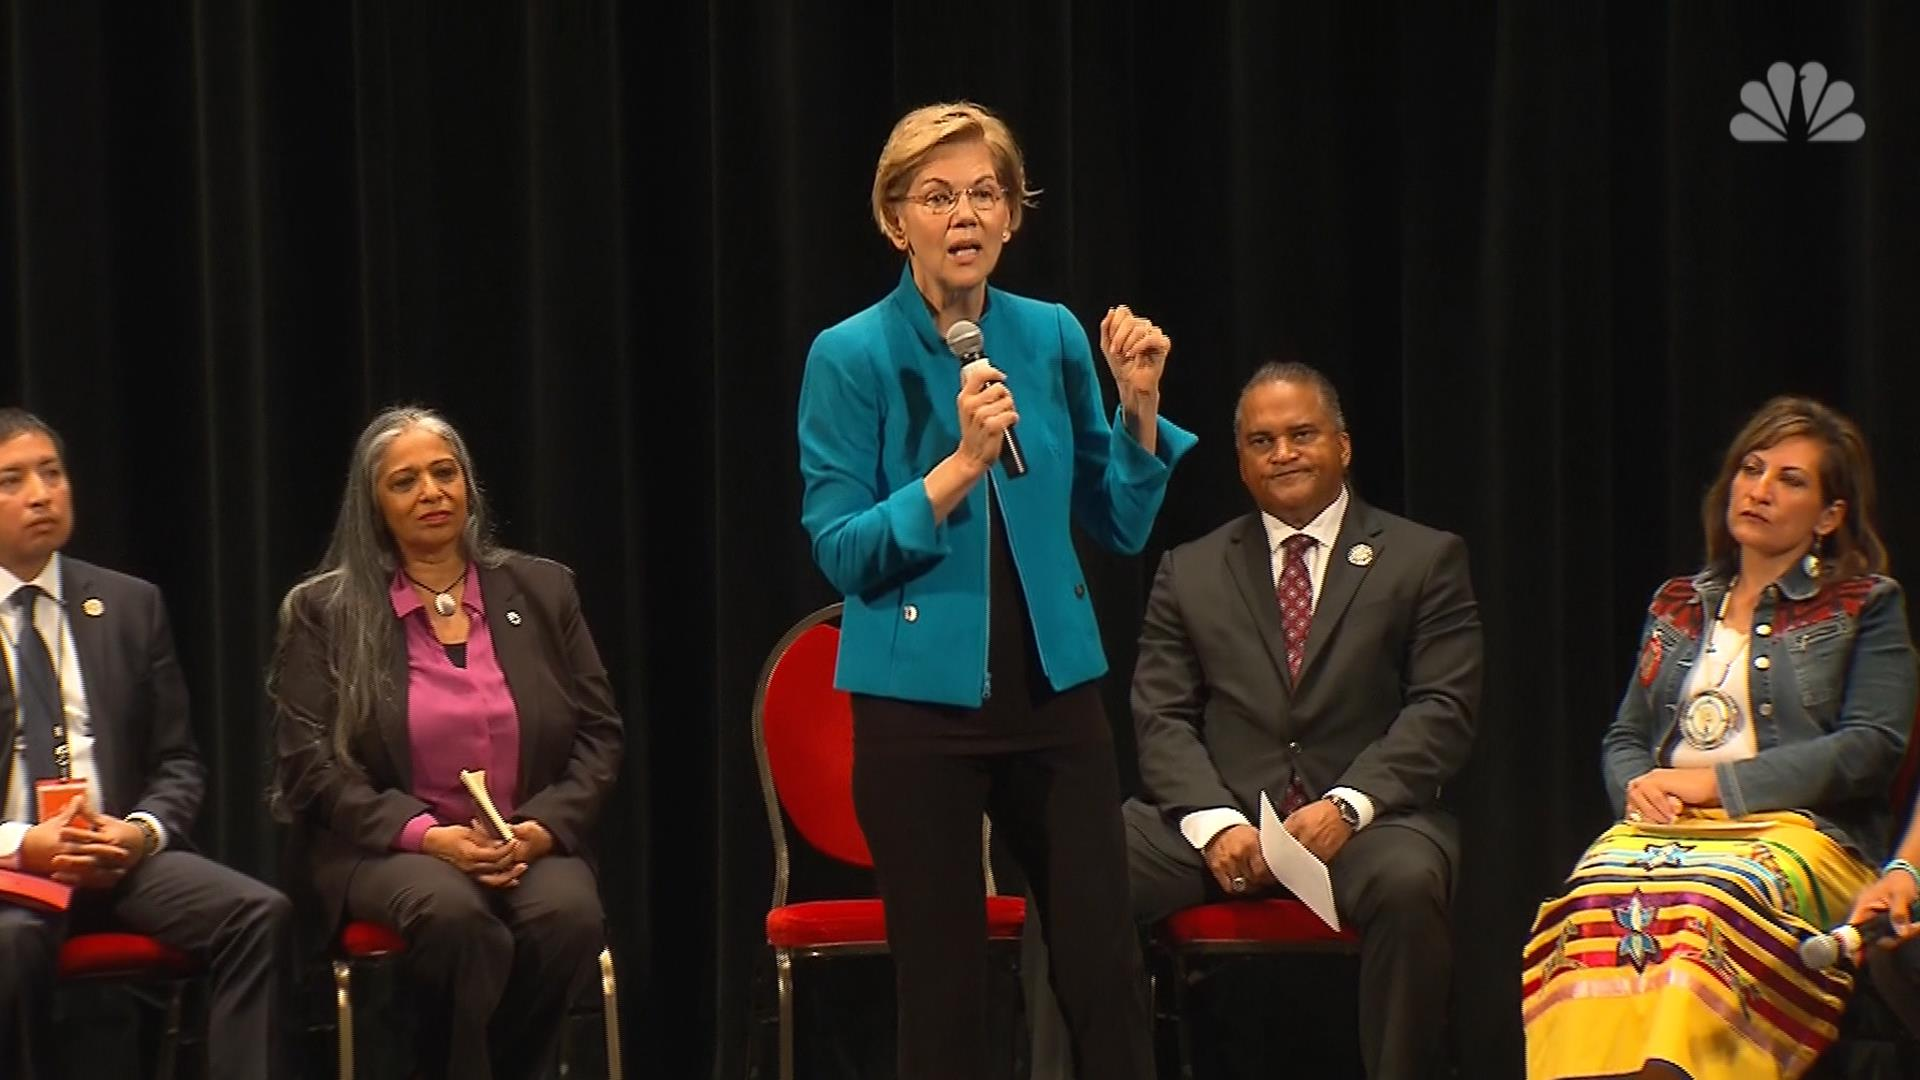 Elizabeth Warren apologizes to Native Americans during presidential forum